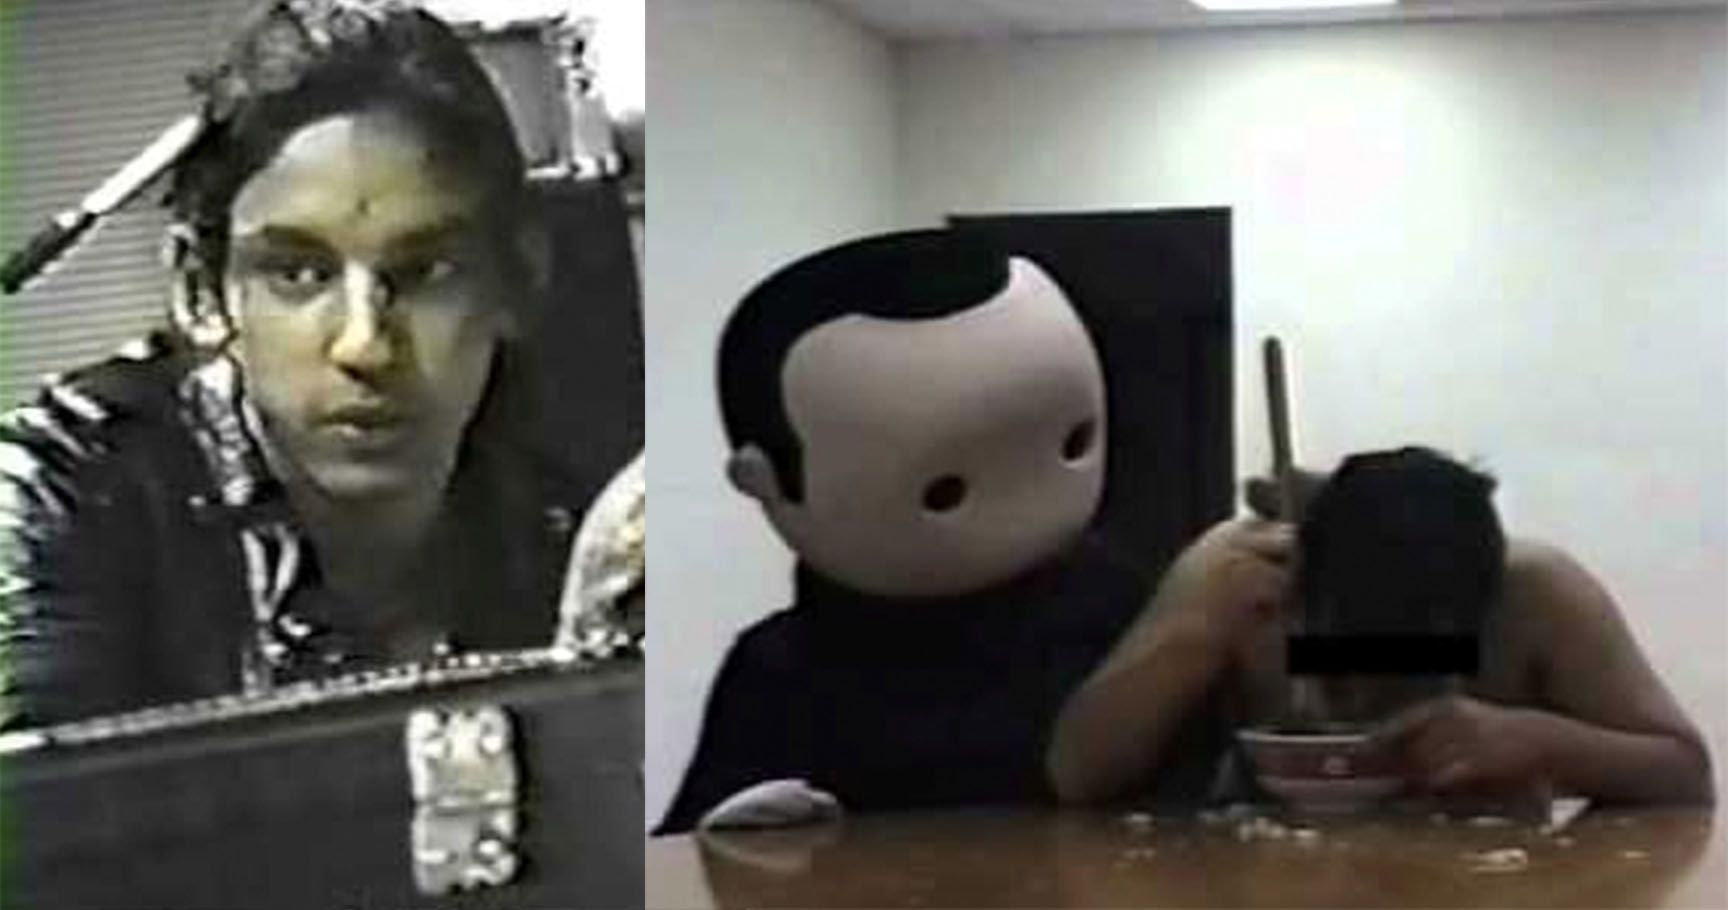 Creepy Unsolved Mysteries From The Dark Corners Of The Internet